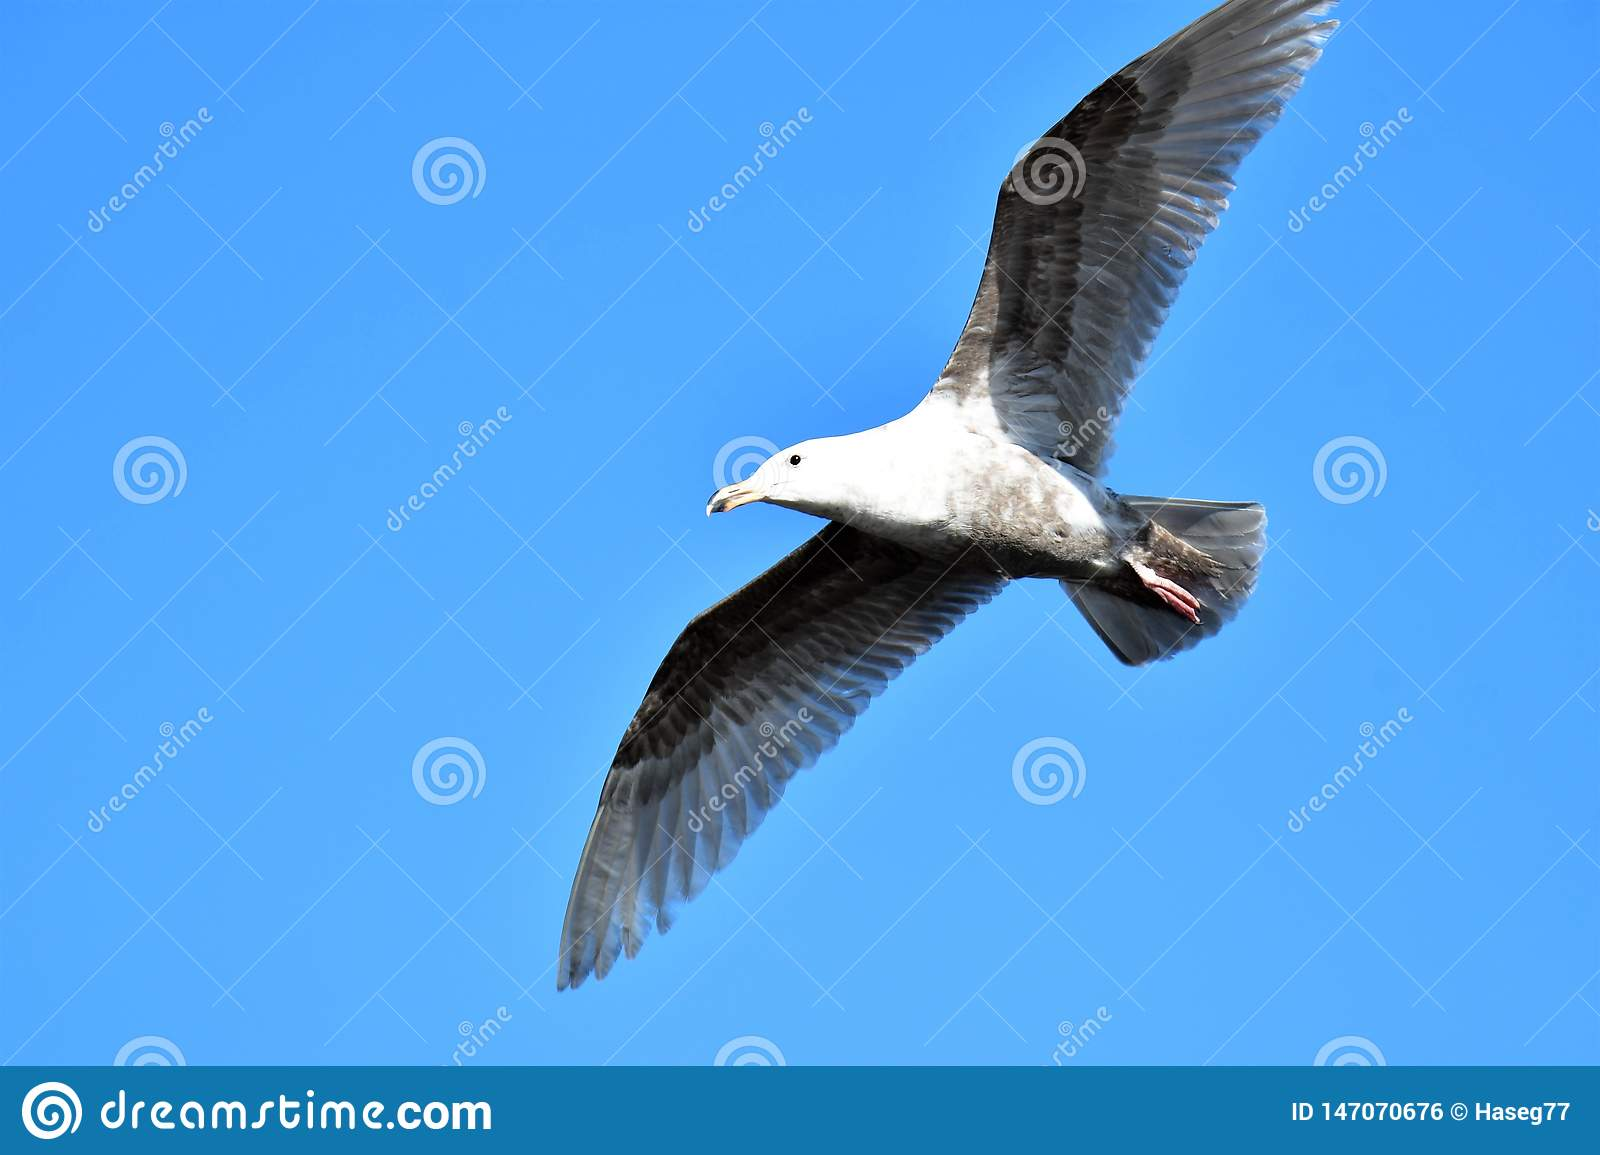 A flying seagull  in the sky.     Closeup